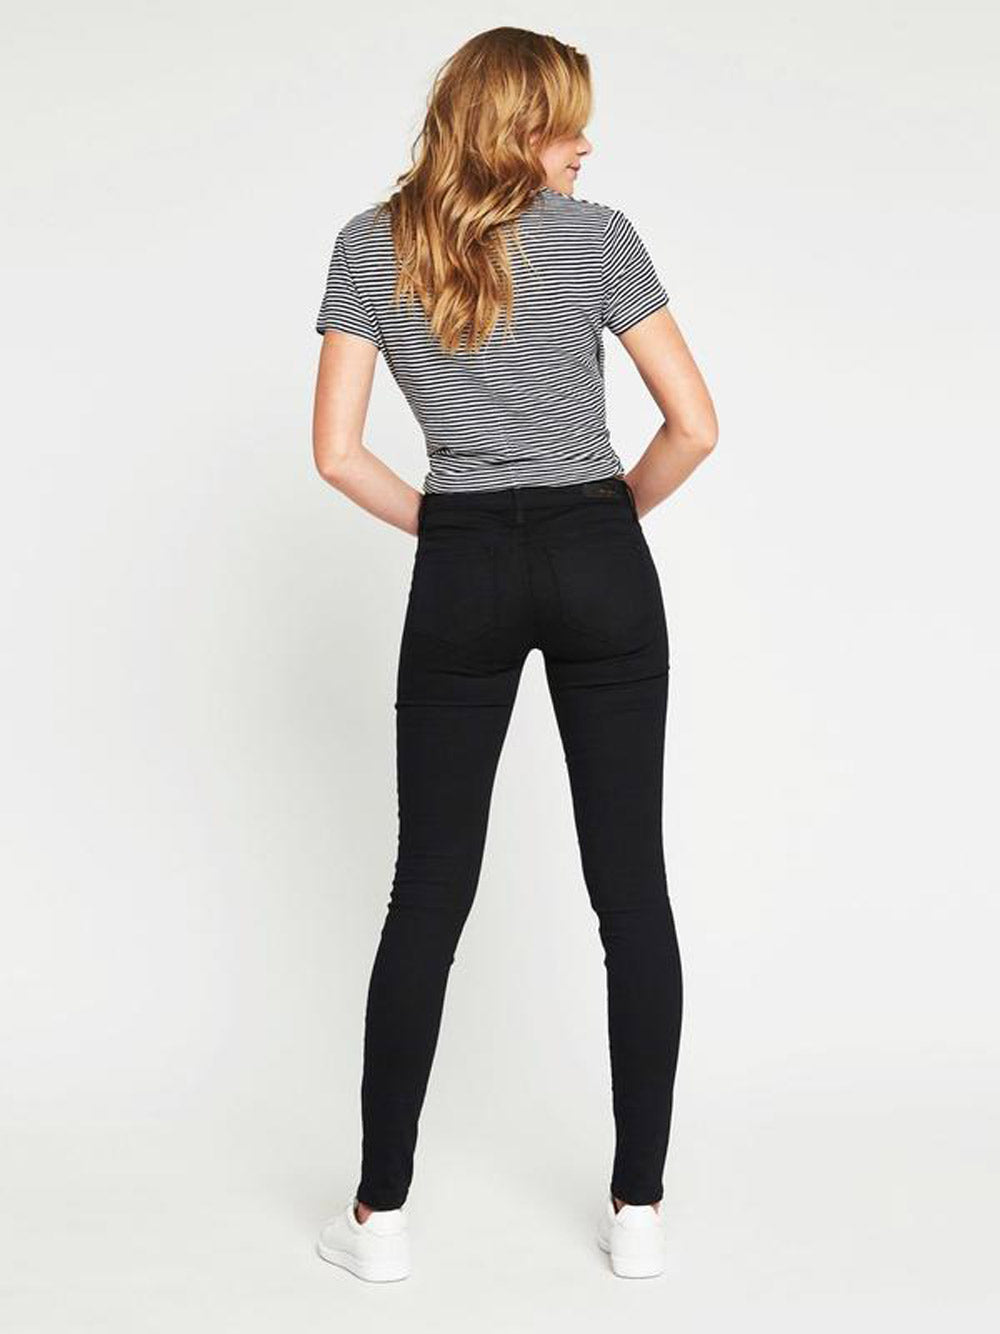 MAVI Alexa Mid Rise Skinny - Double Black Gold Reform